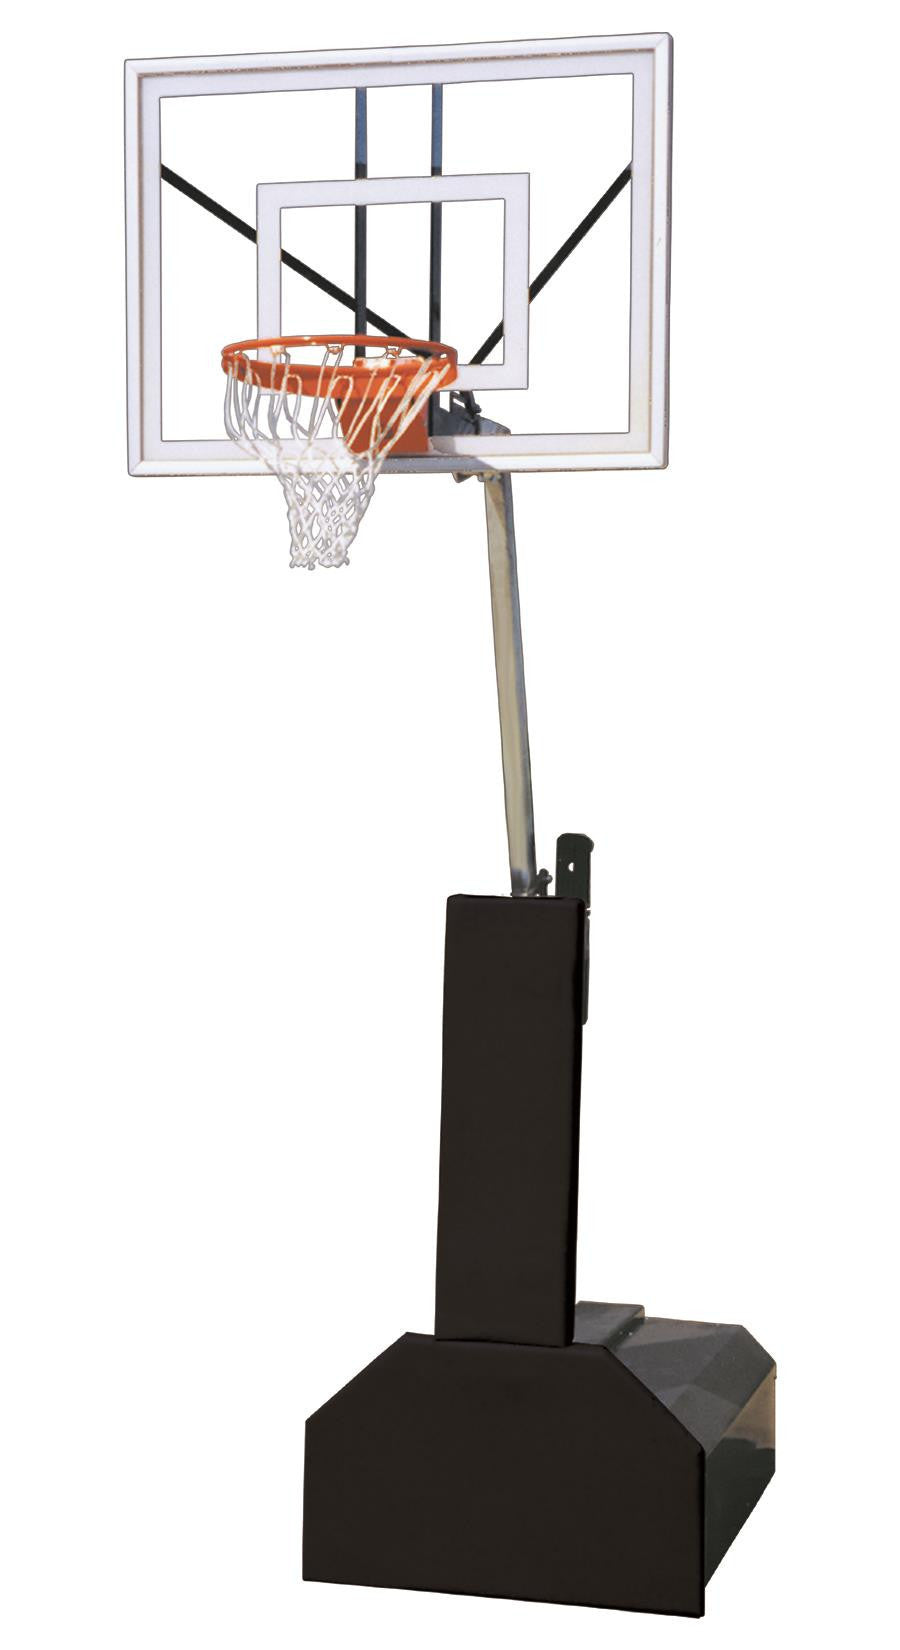 First Team Thunder Ultra Portable Adjustable Basketball Hoop 54 inch Tempered Glass